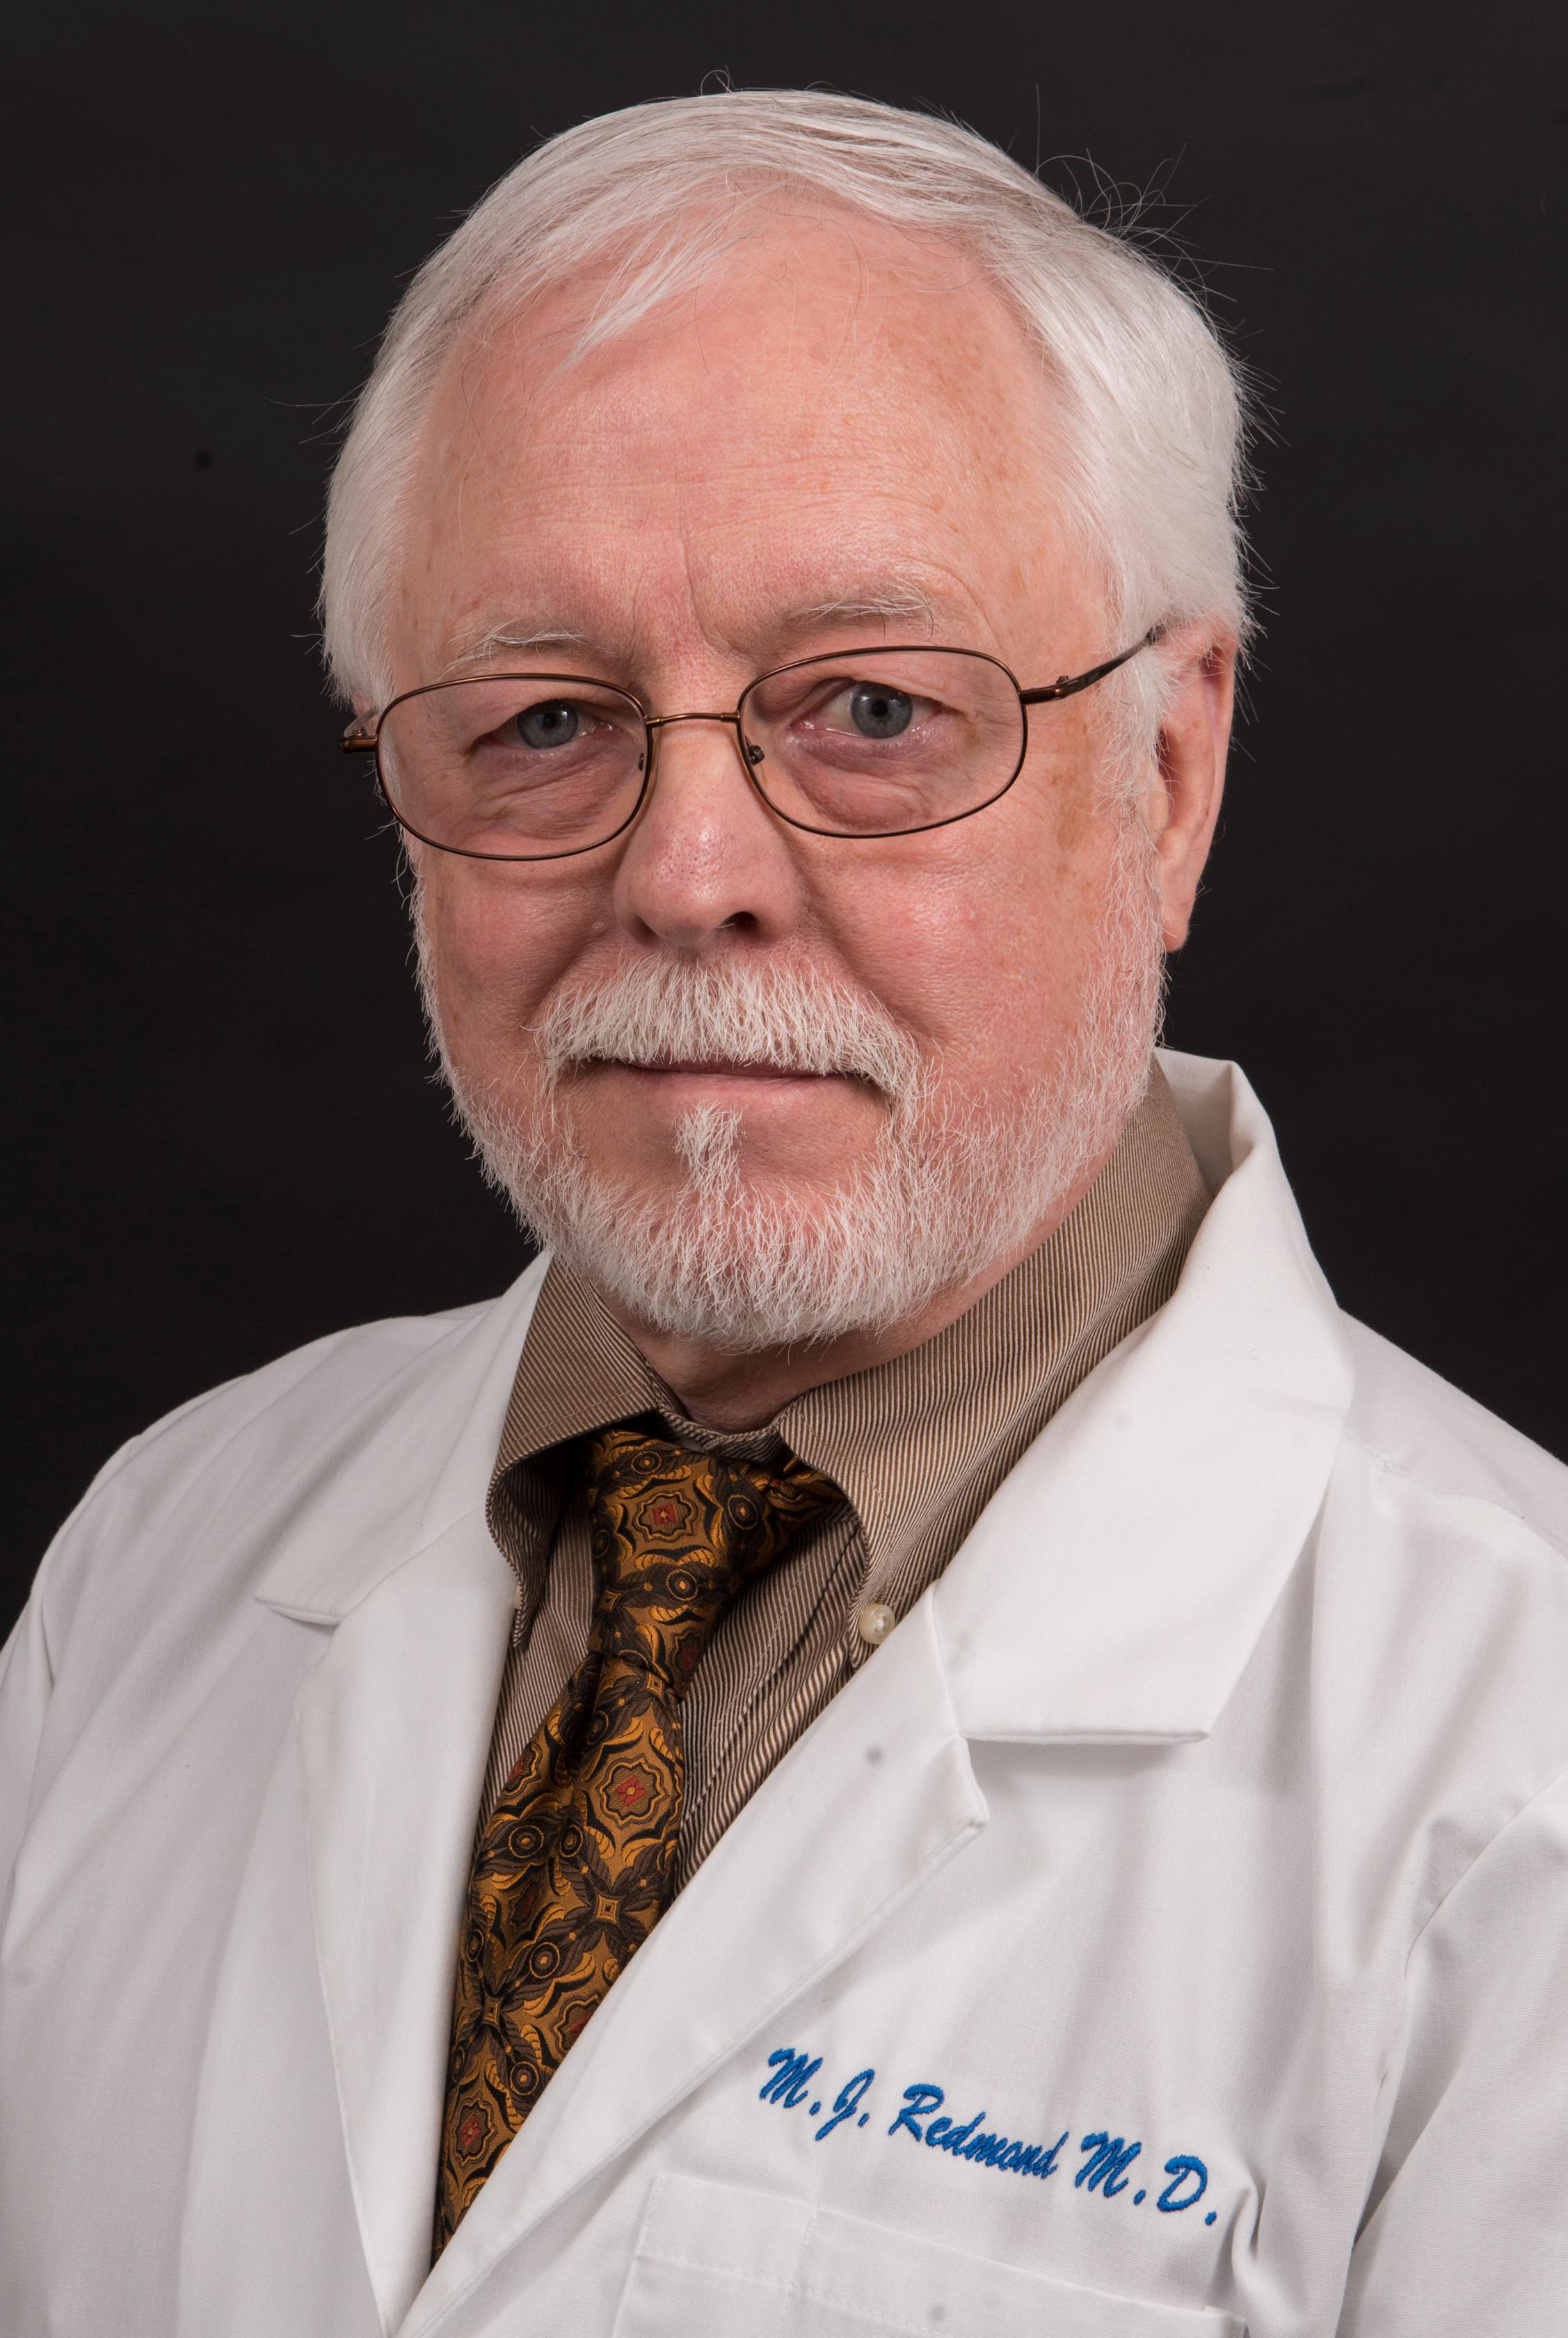 Dr. Michael Redmond, MD